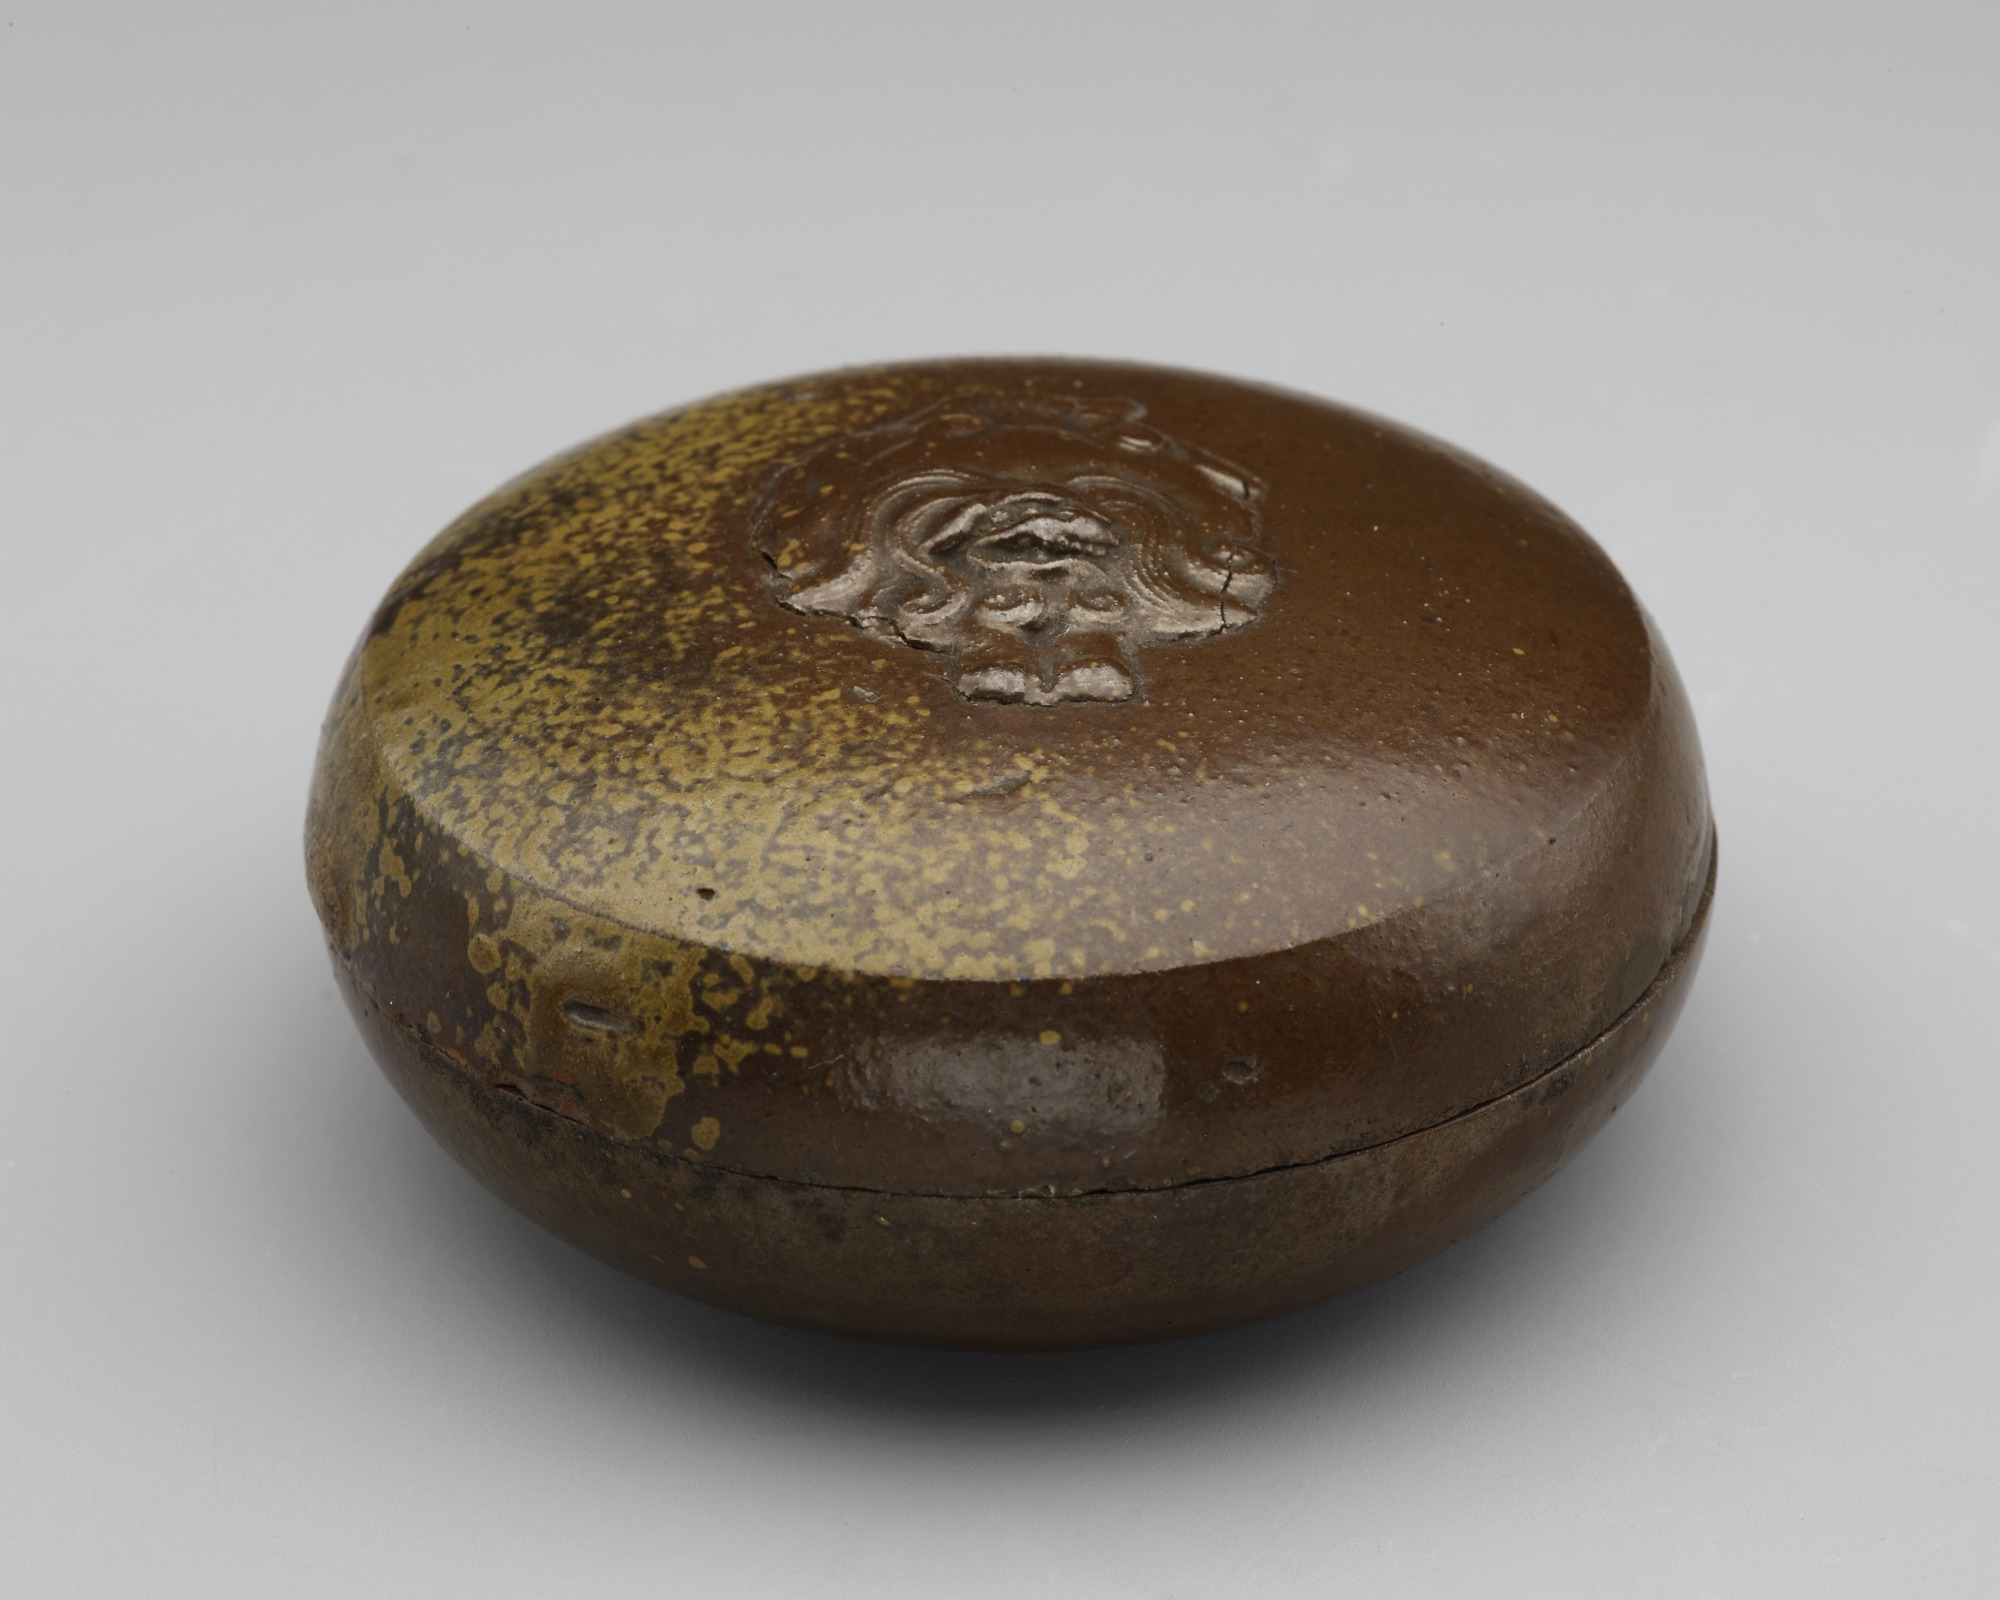 : Incense box with relief figure of lion